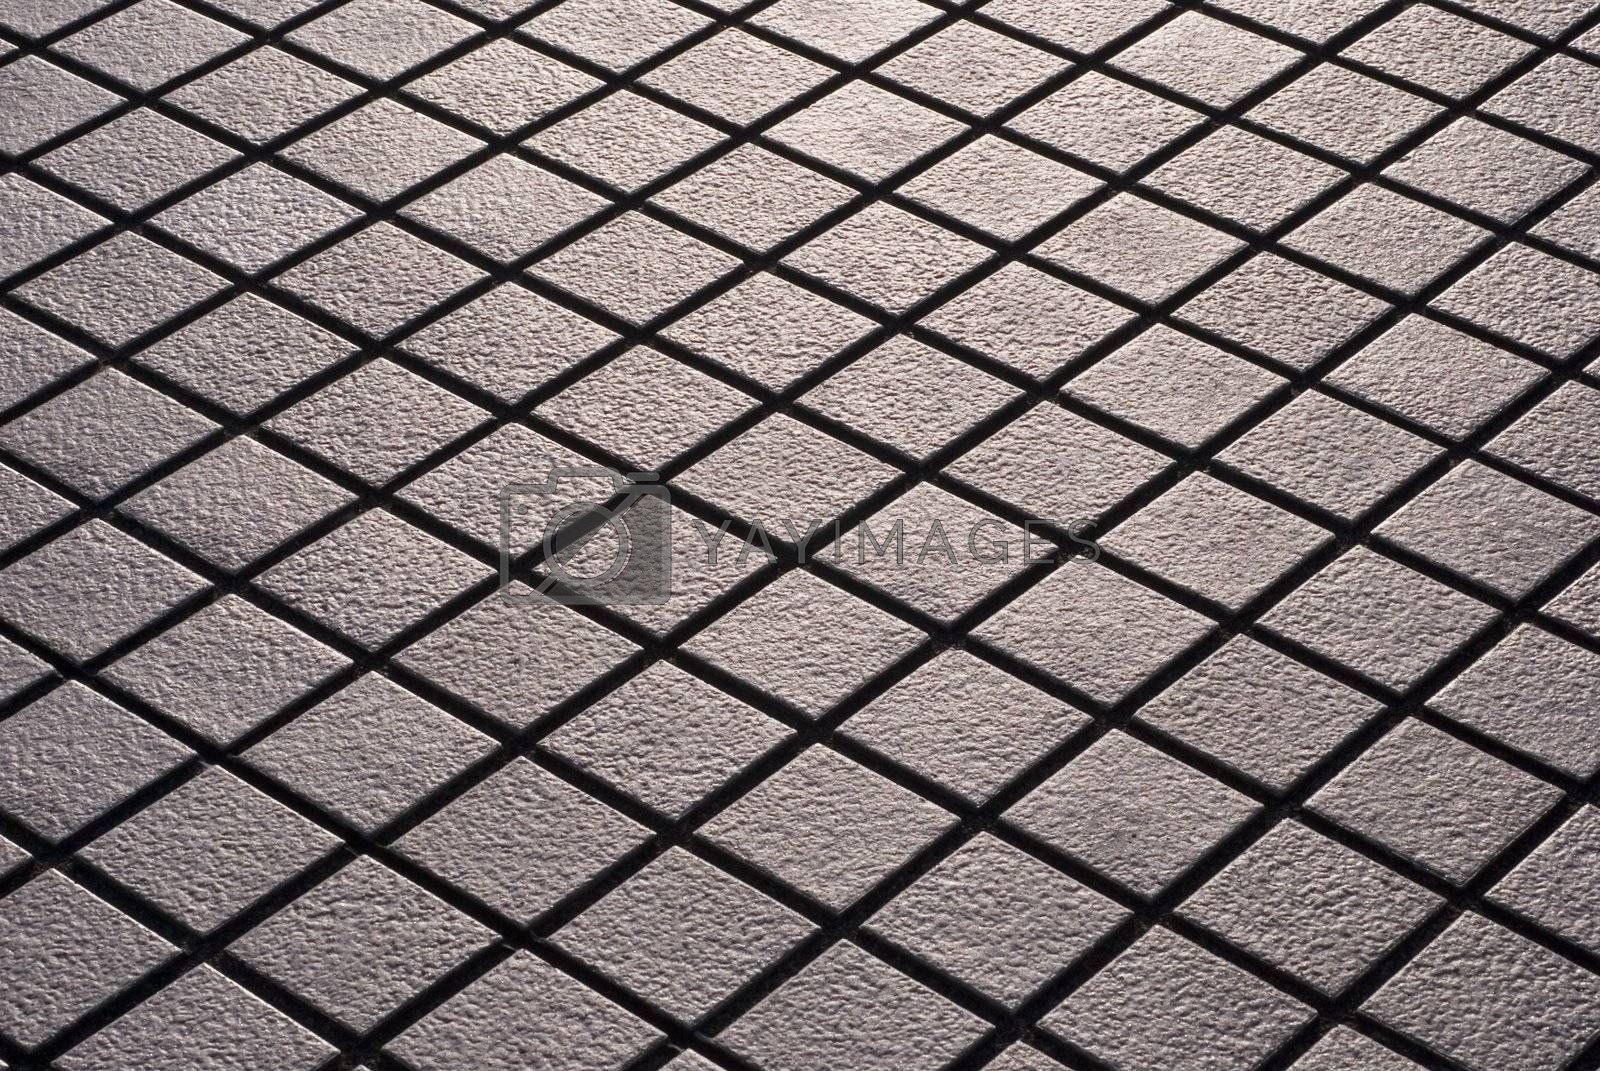 Criss-crossed design of diamond shaped street tiling.